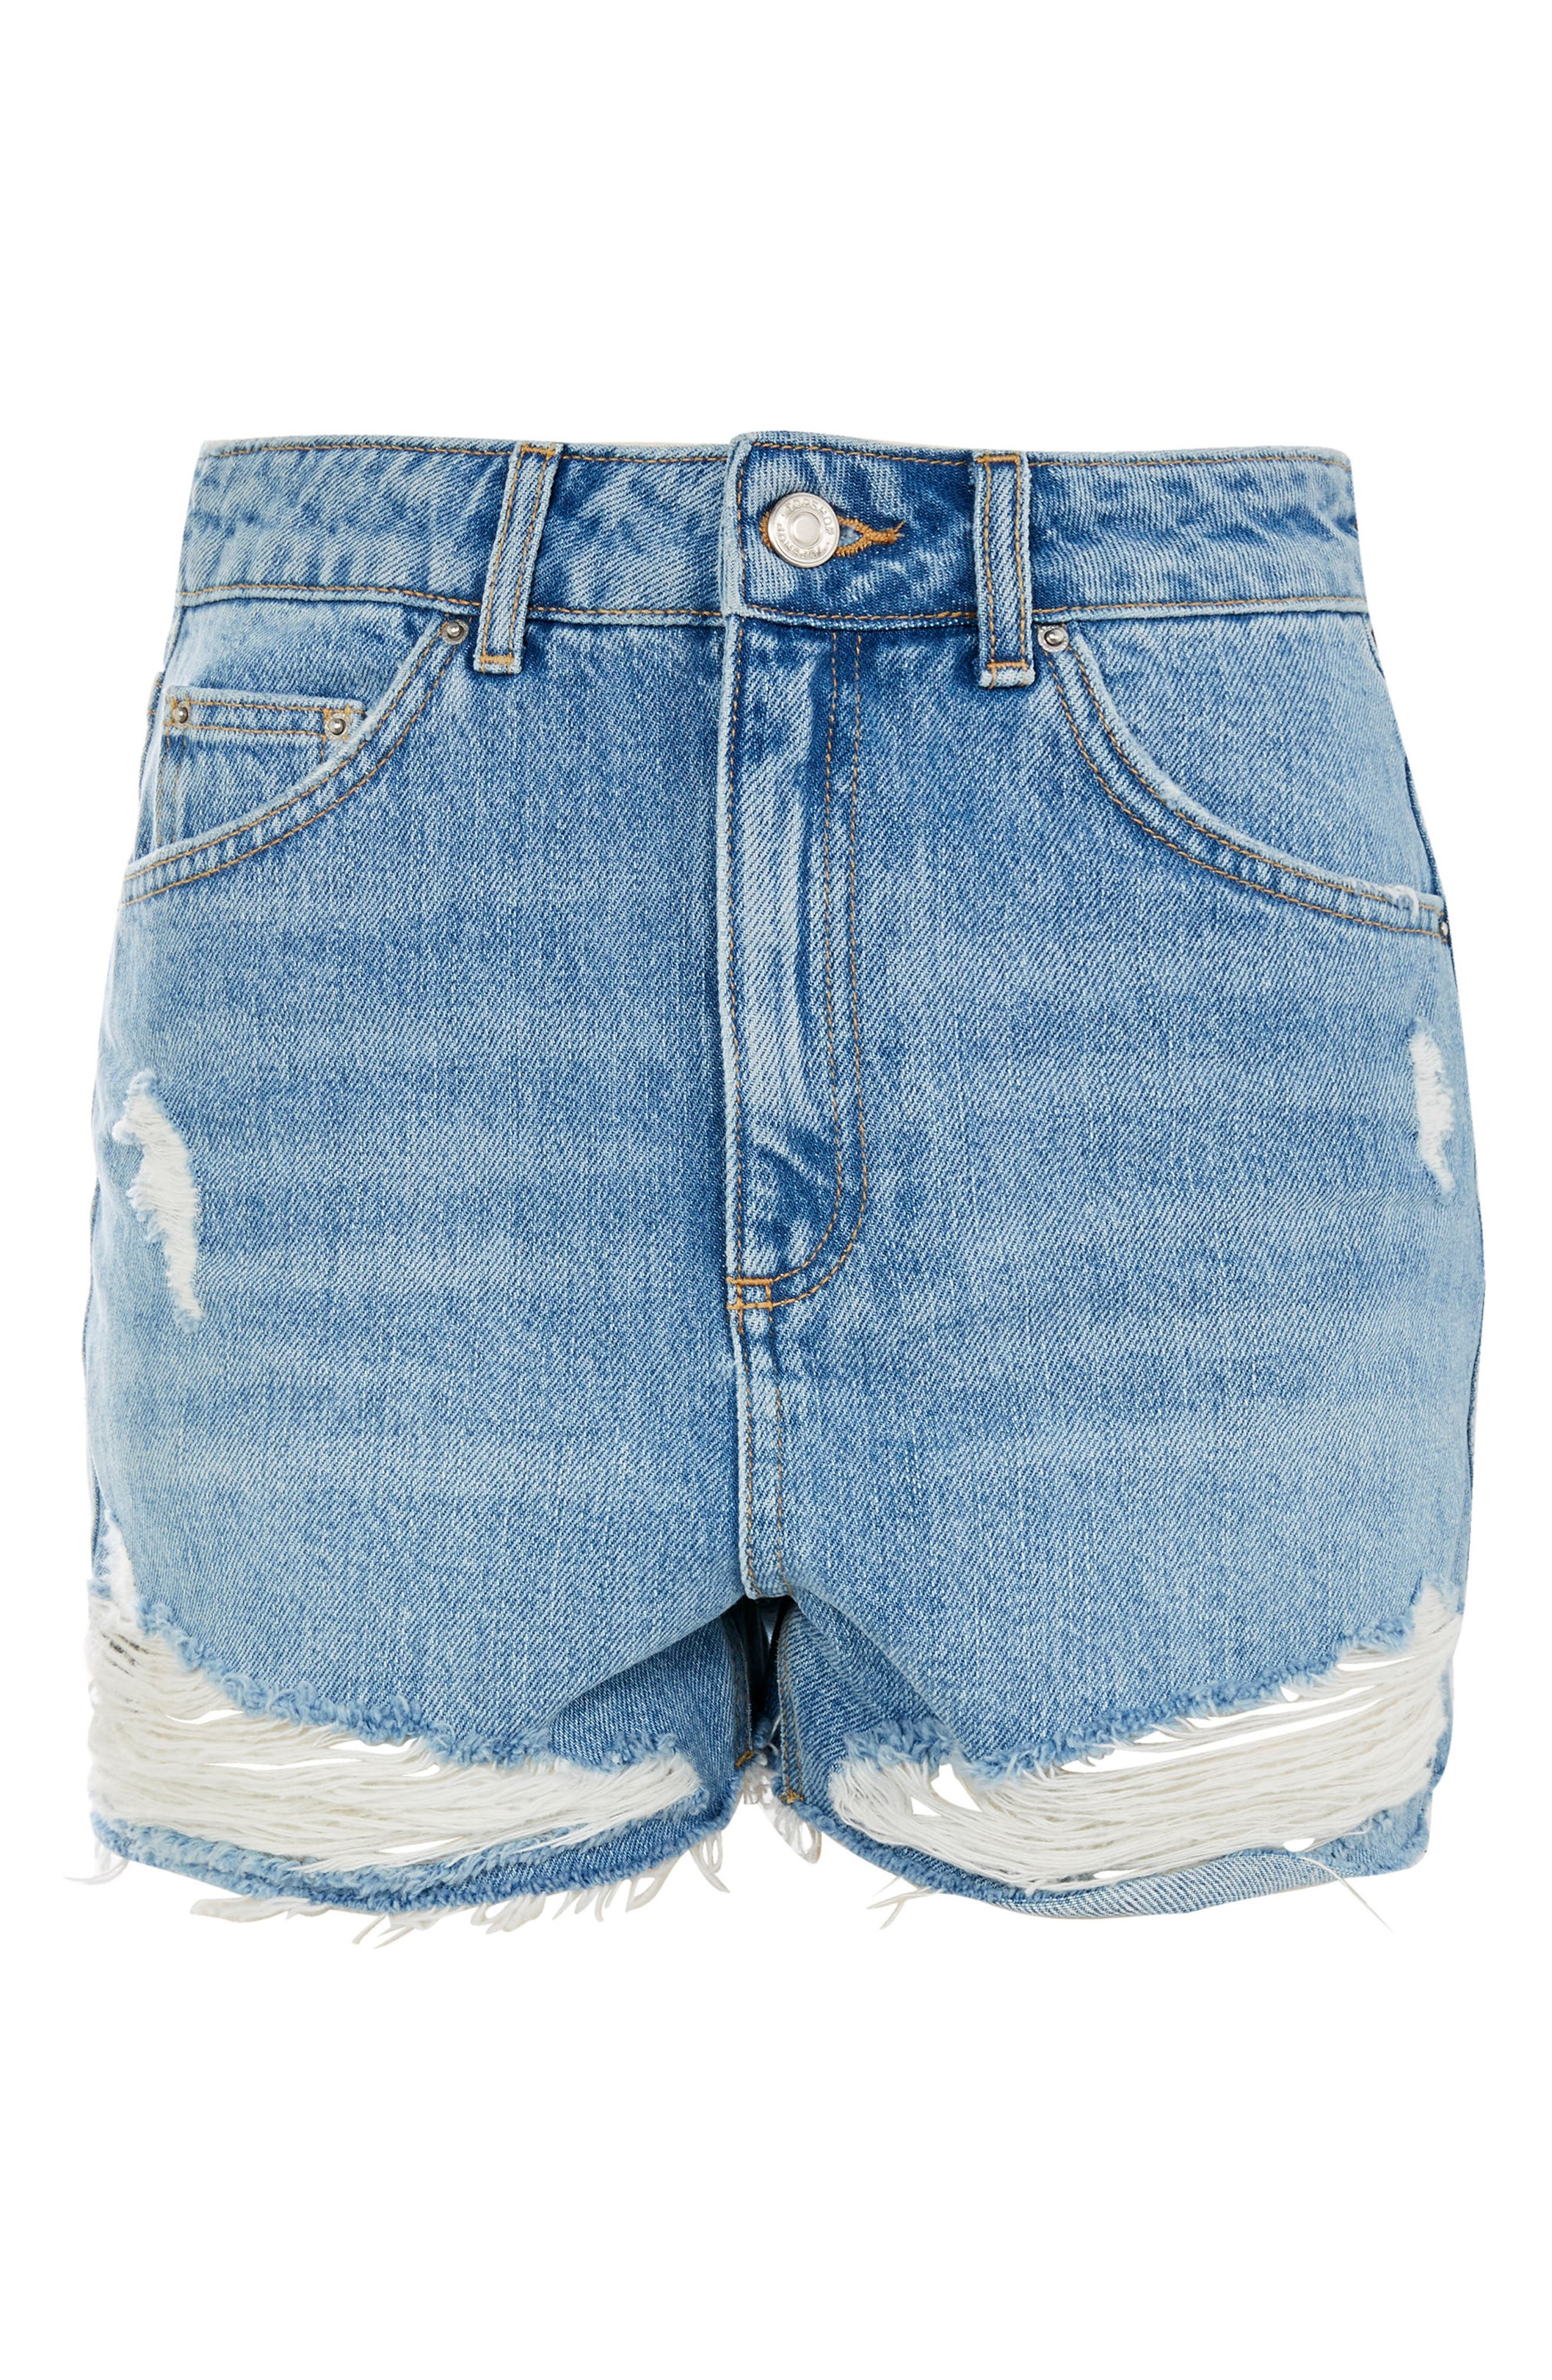 Alternate Image 3  - Topshop Ripped Denim Mom Shorts